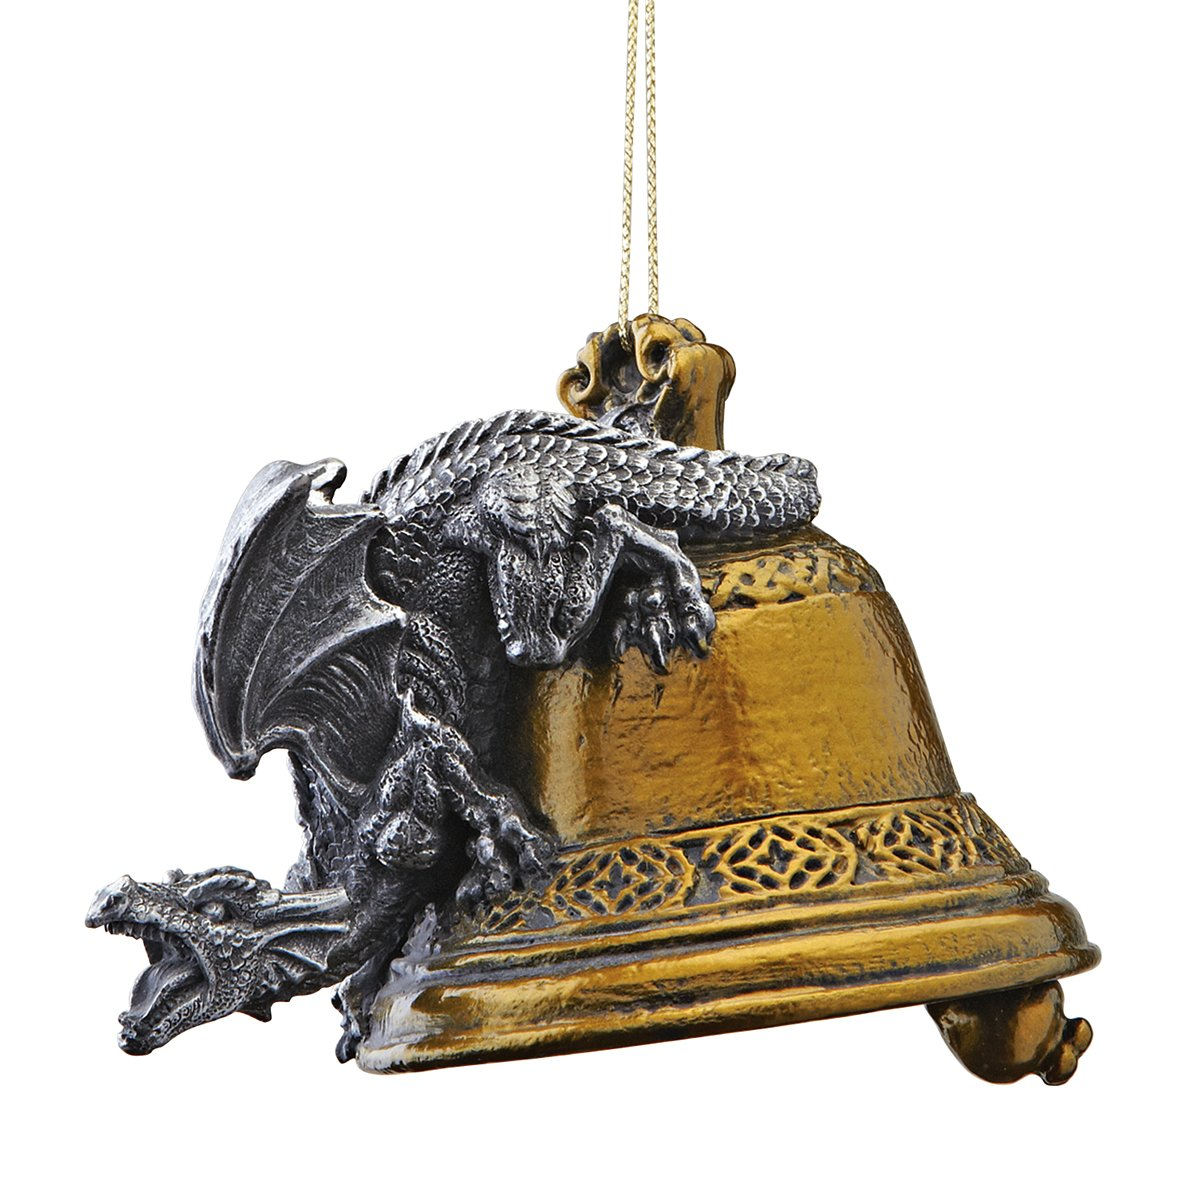 Design Toscano Christmas Tree Ornaments - Humdinger the Bell Ringer Gothic Dragon Holiday Ornament - Dragon Statue - Christmas Decorations